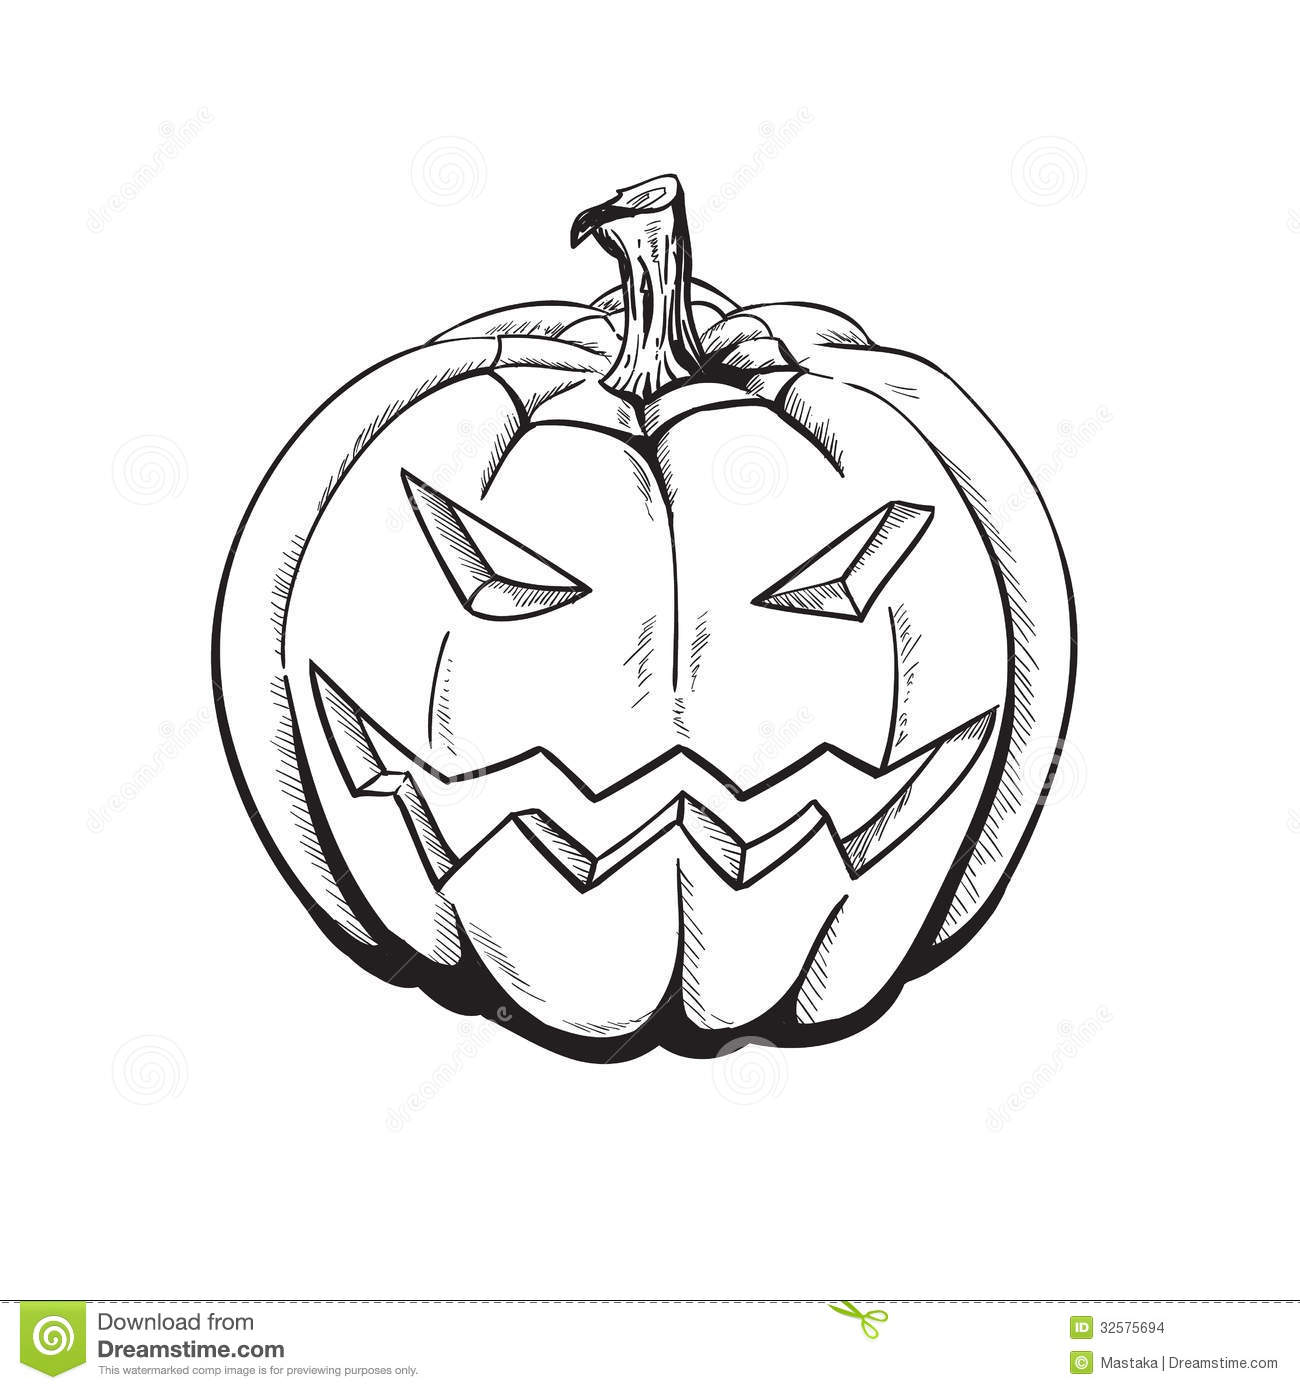 Adult Horror Halloween Coloring Pages also Cute Halloween Pumpkin Coloring Pages Toddler Will Love Color 0088852 also Halloween Drawing Pictures additionally Halloween Picture Color Pages For Children further halloweeneventsusa. on scary halloween pumpkins